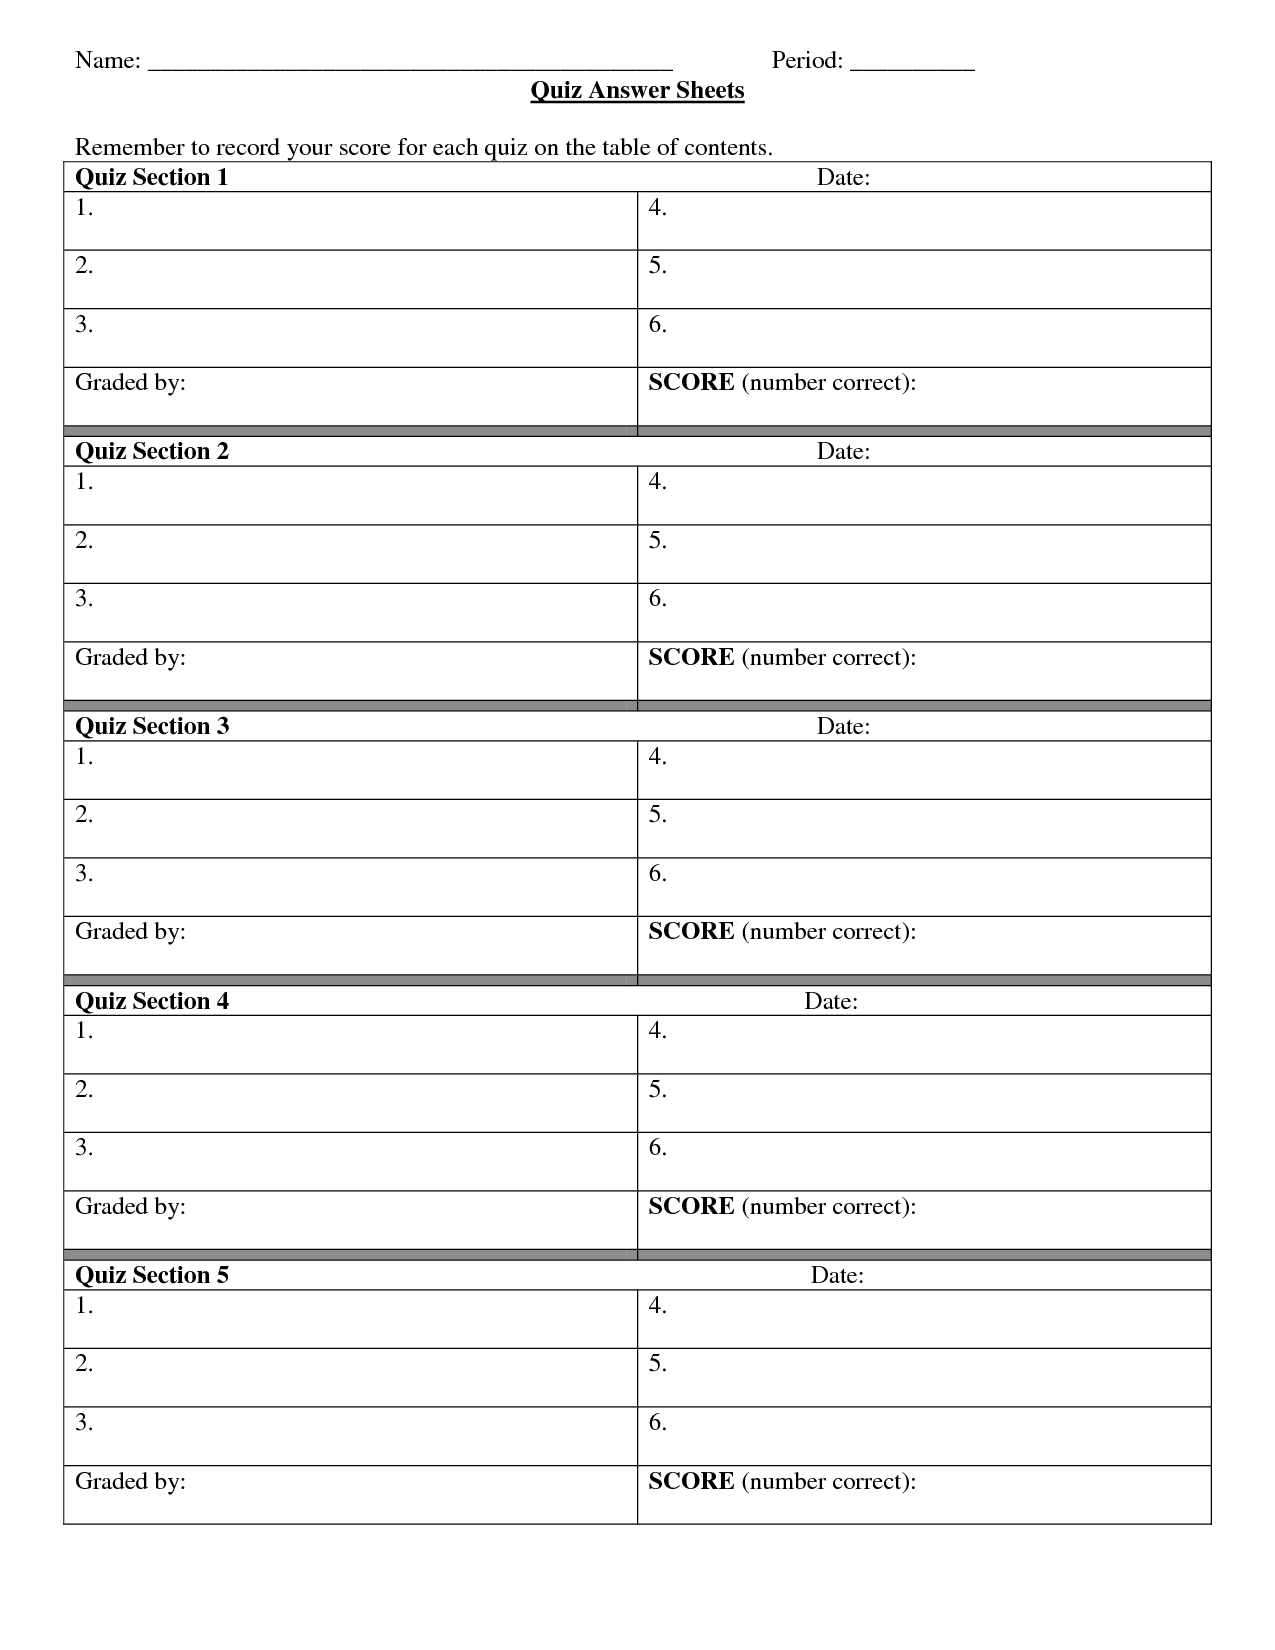 10 Best Images Of Blank Continents And Oceans Worksheets